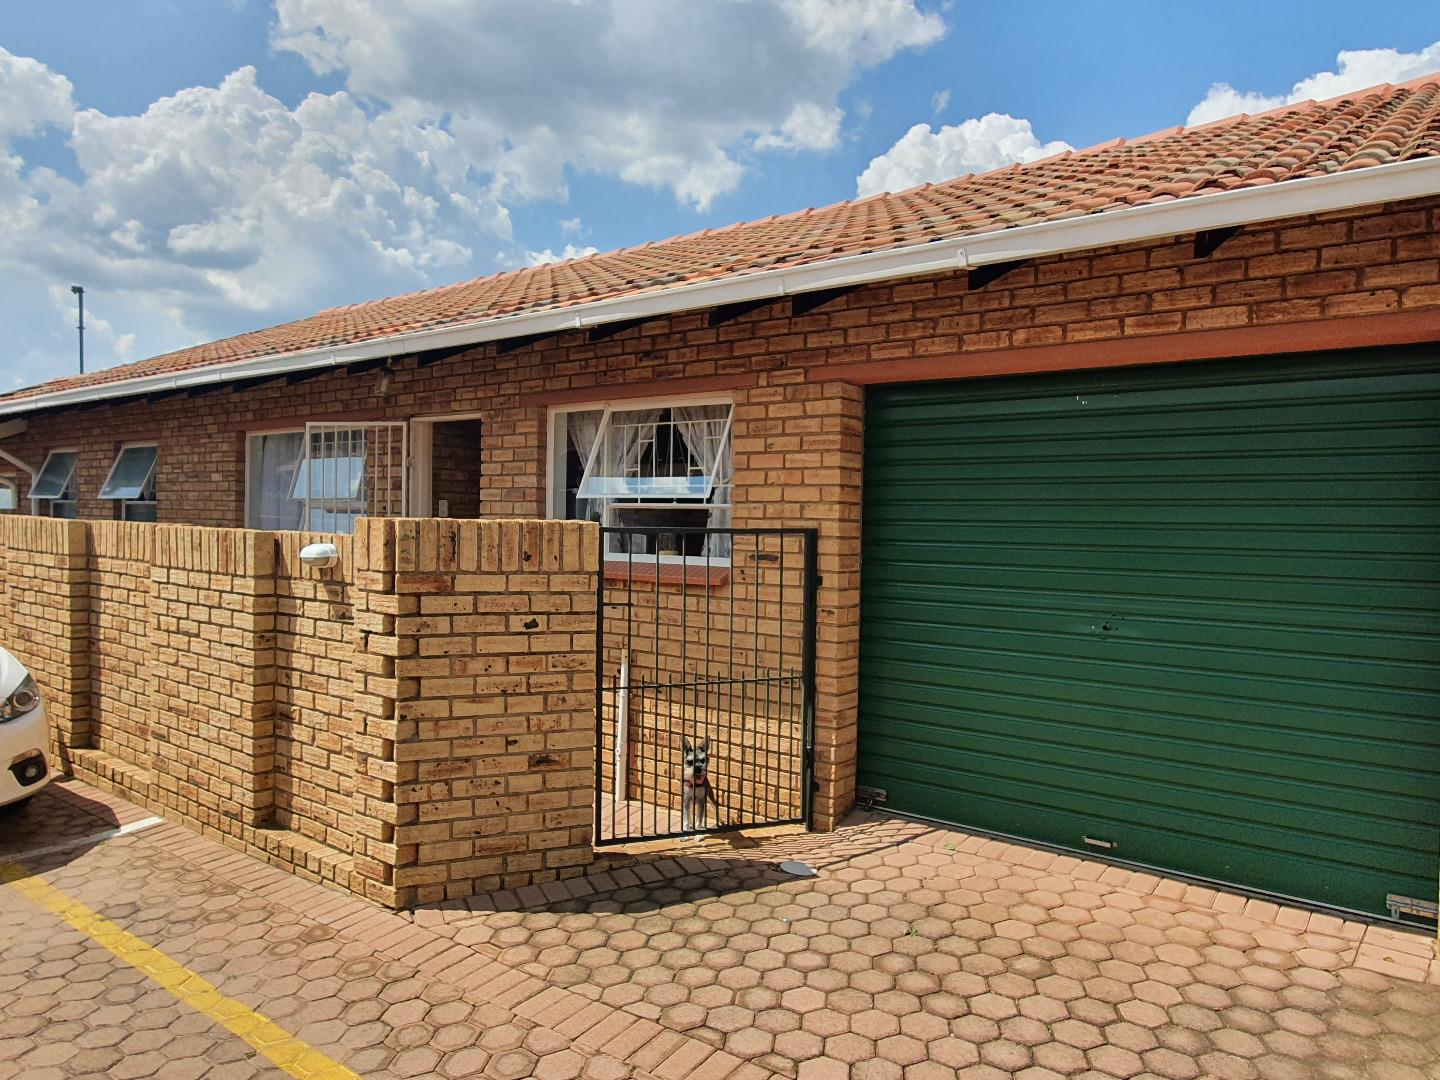 3 Bedroom  Townhouse for Sale in Krugersdorp - Gauteng